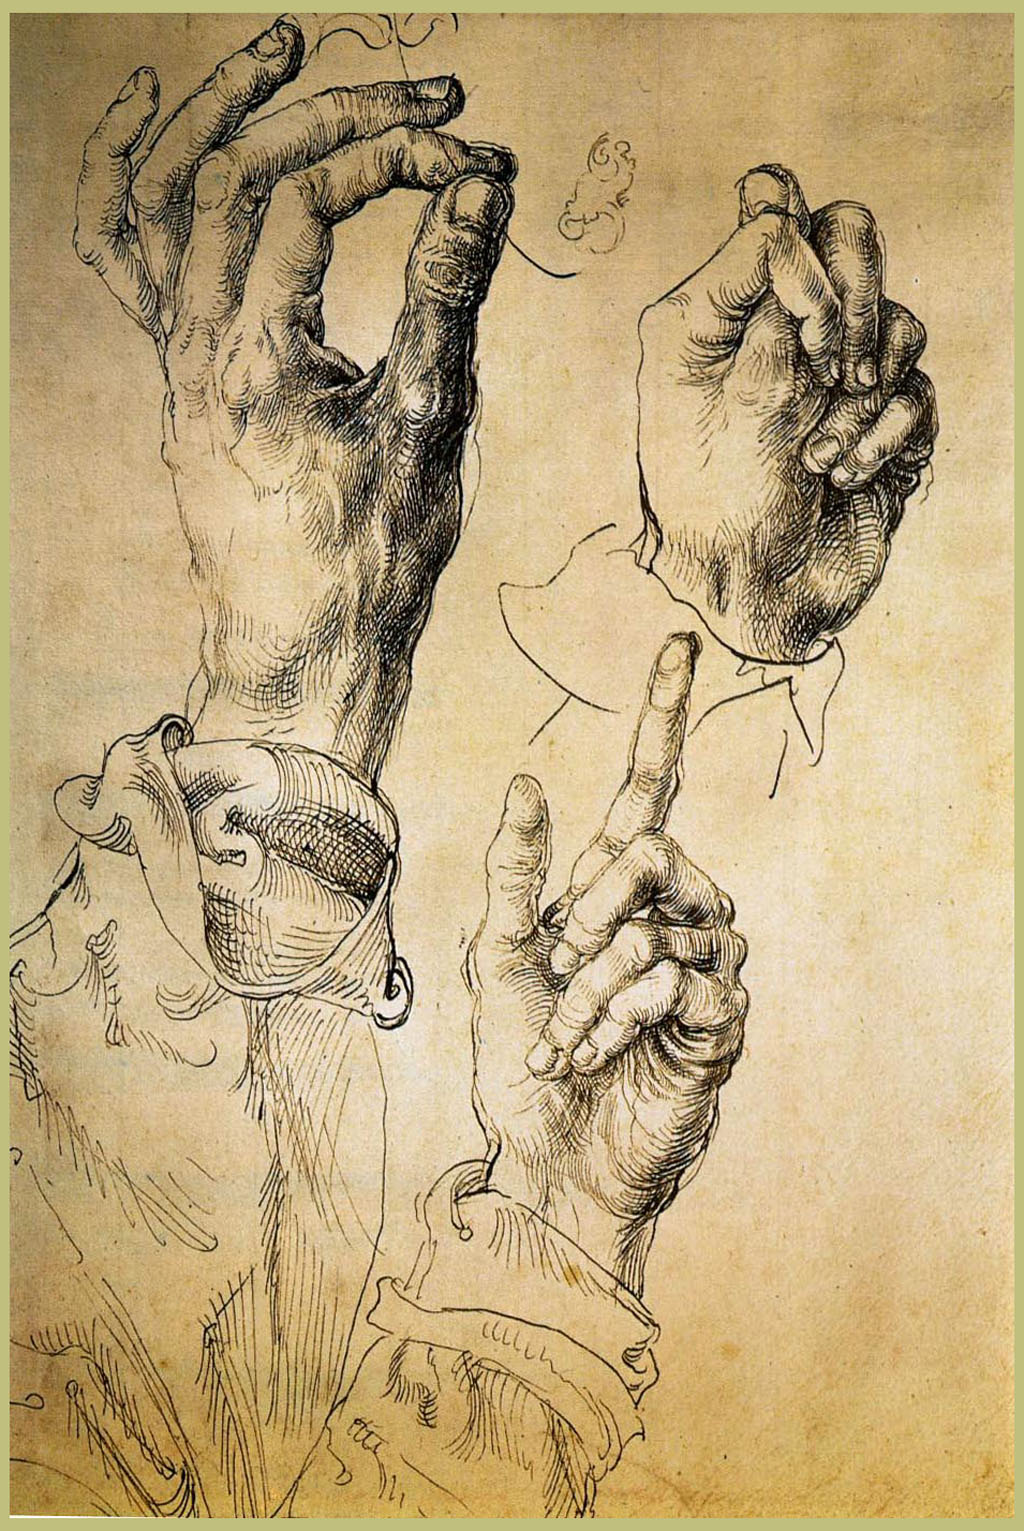 Praying Hands (Dürer) - Wikipedia